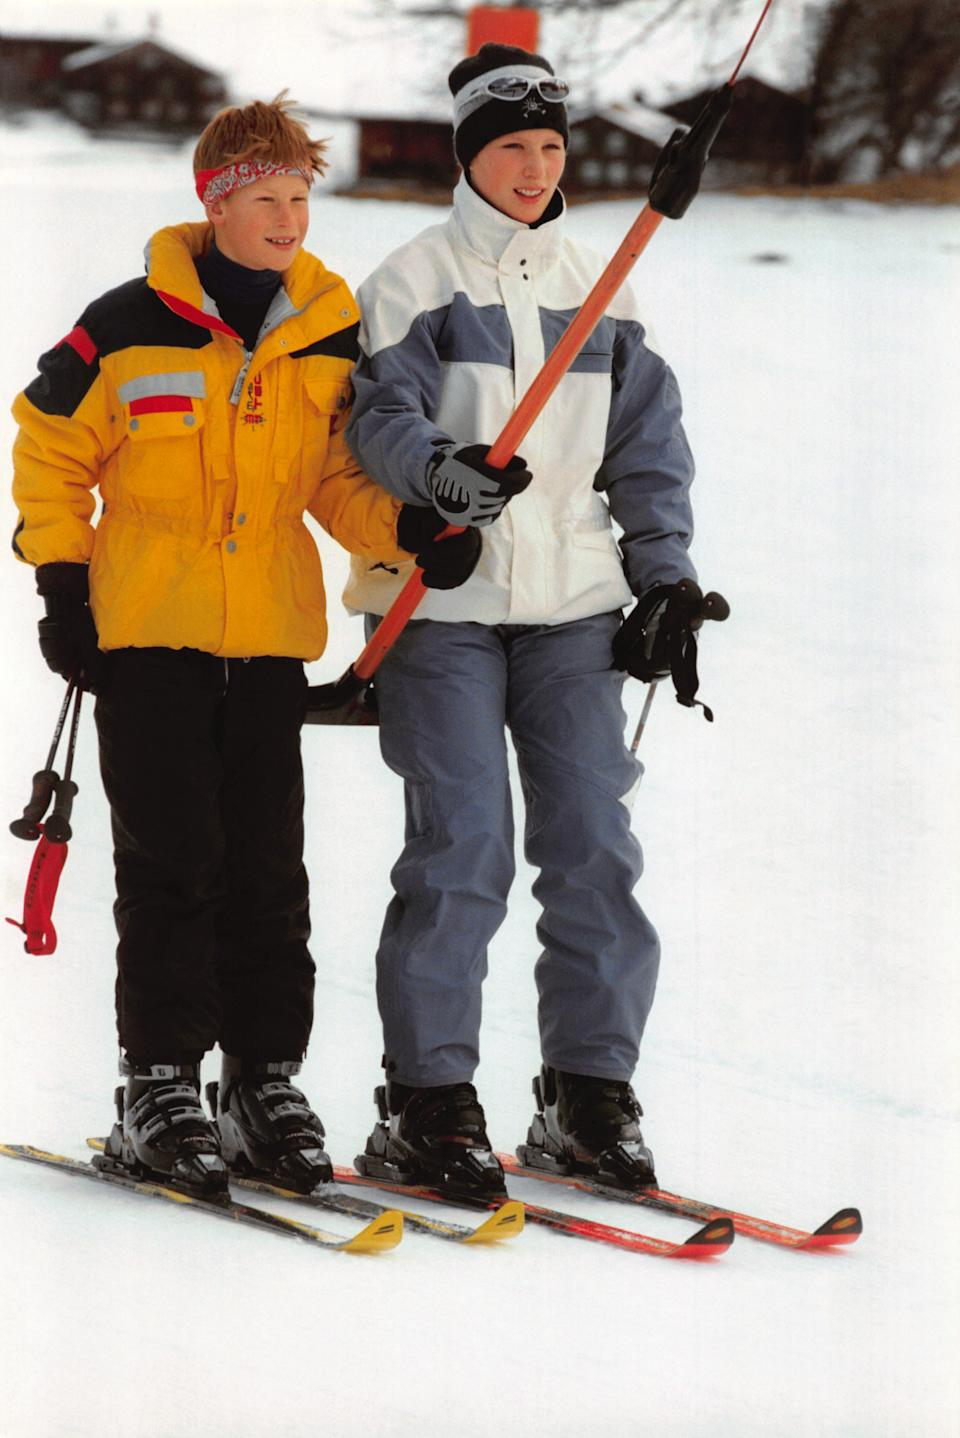 Prince Harry and Zara Phillips hold on to a snow jet ski as they ski on holiday